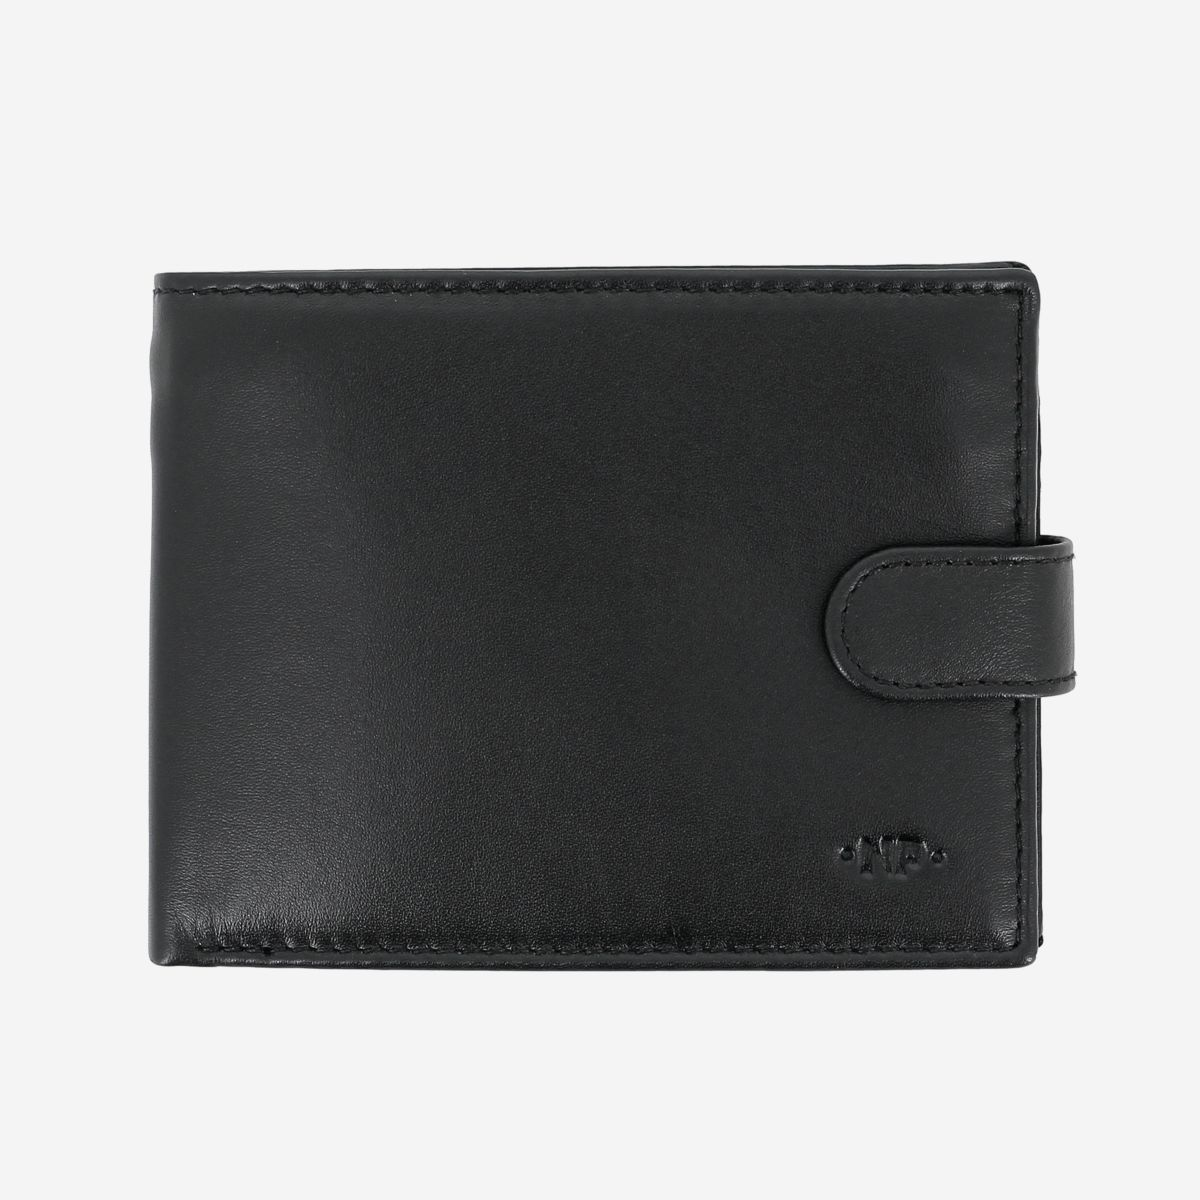 NUVOLA PELLE Mens Leather Wallet With Snap Button - Black